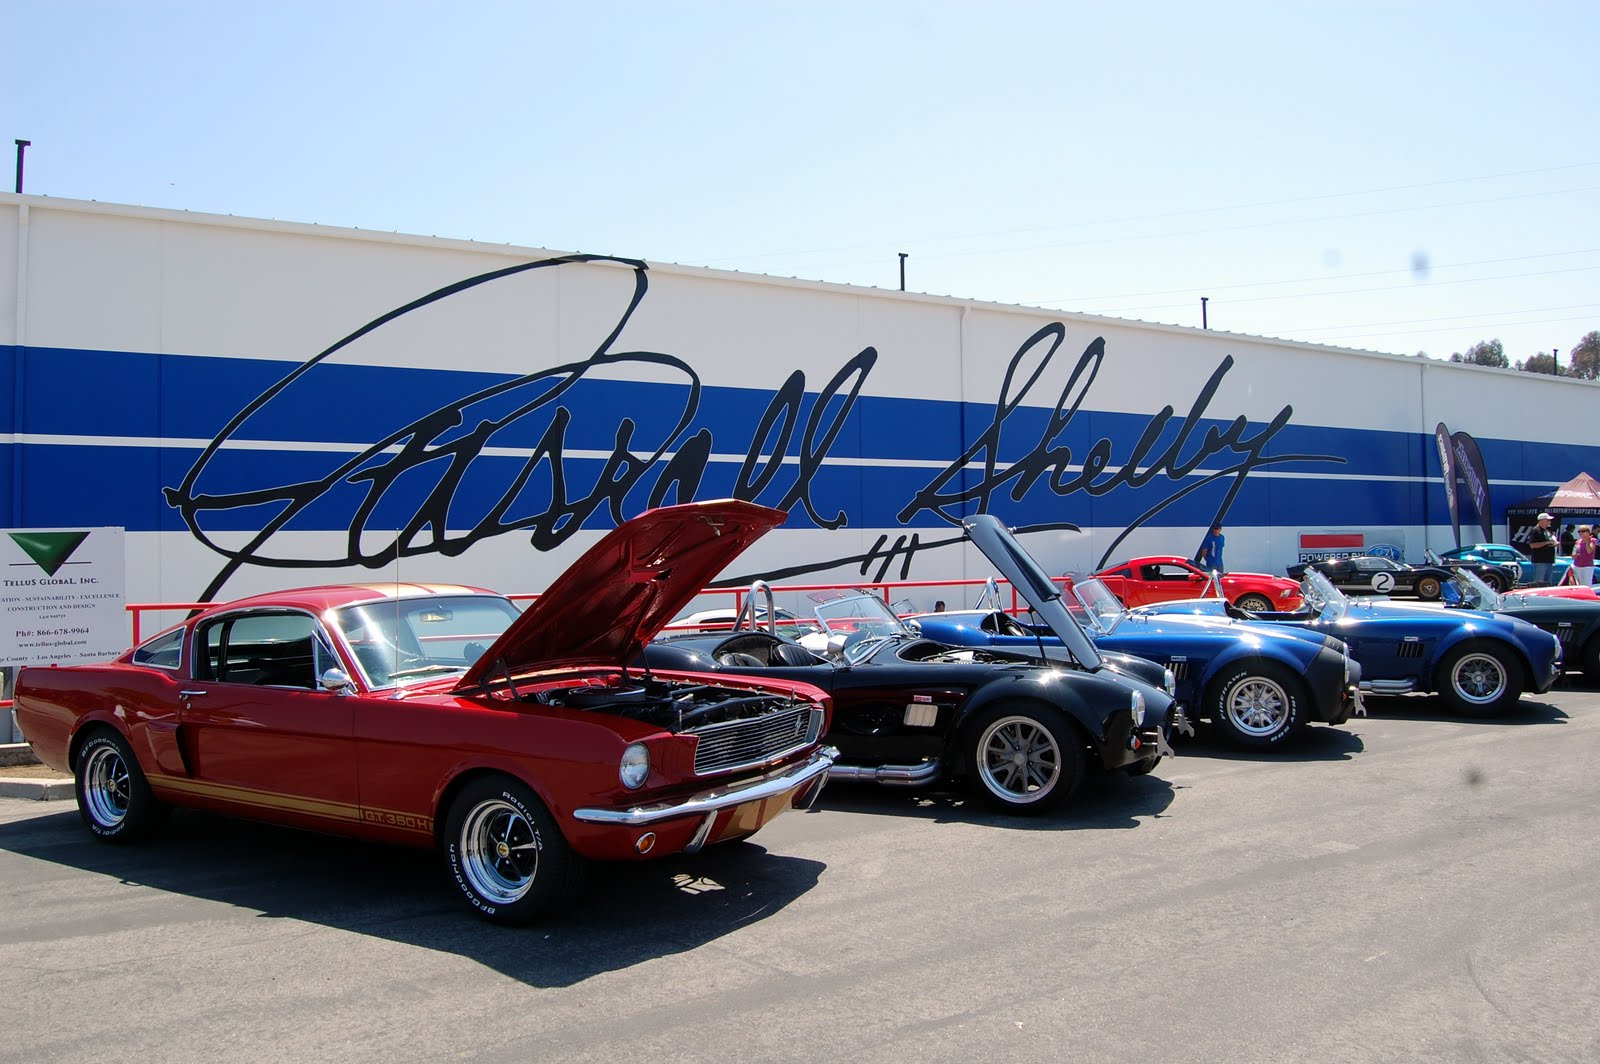 Car Show Report: 2013 First Annual Carroll Shelby Tribute and Car Show Gardena, CA